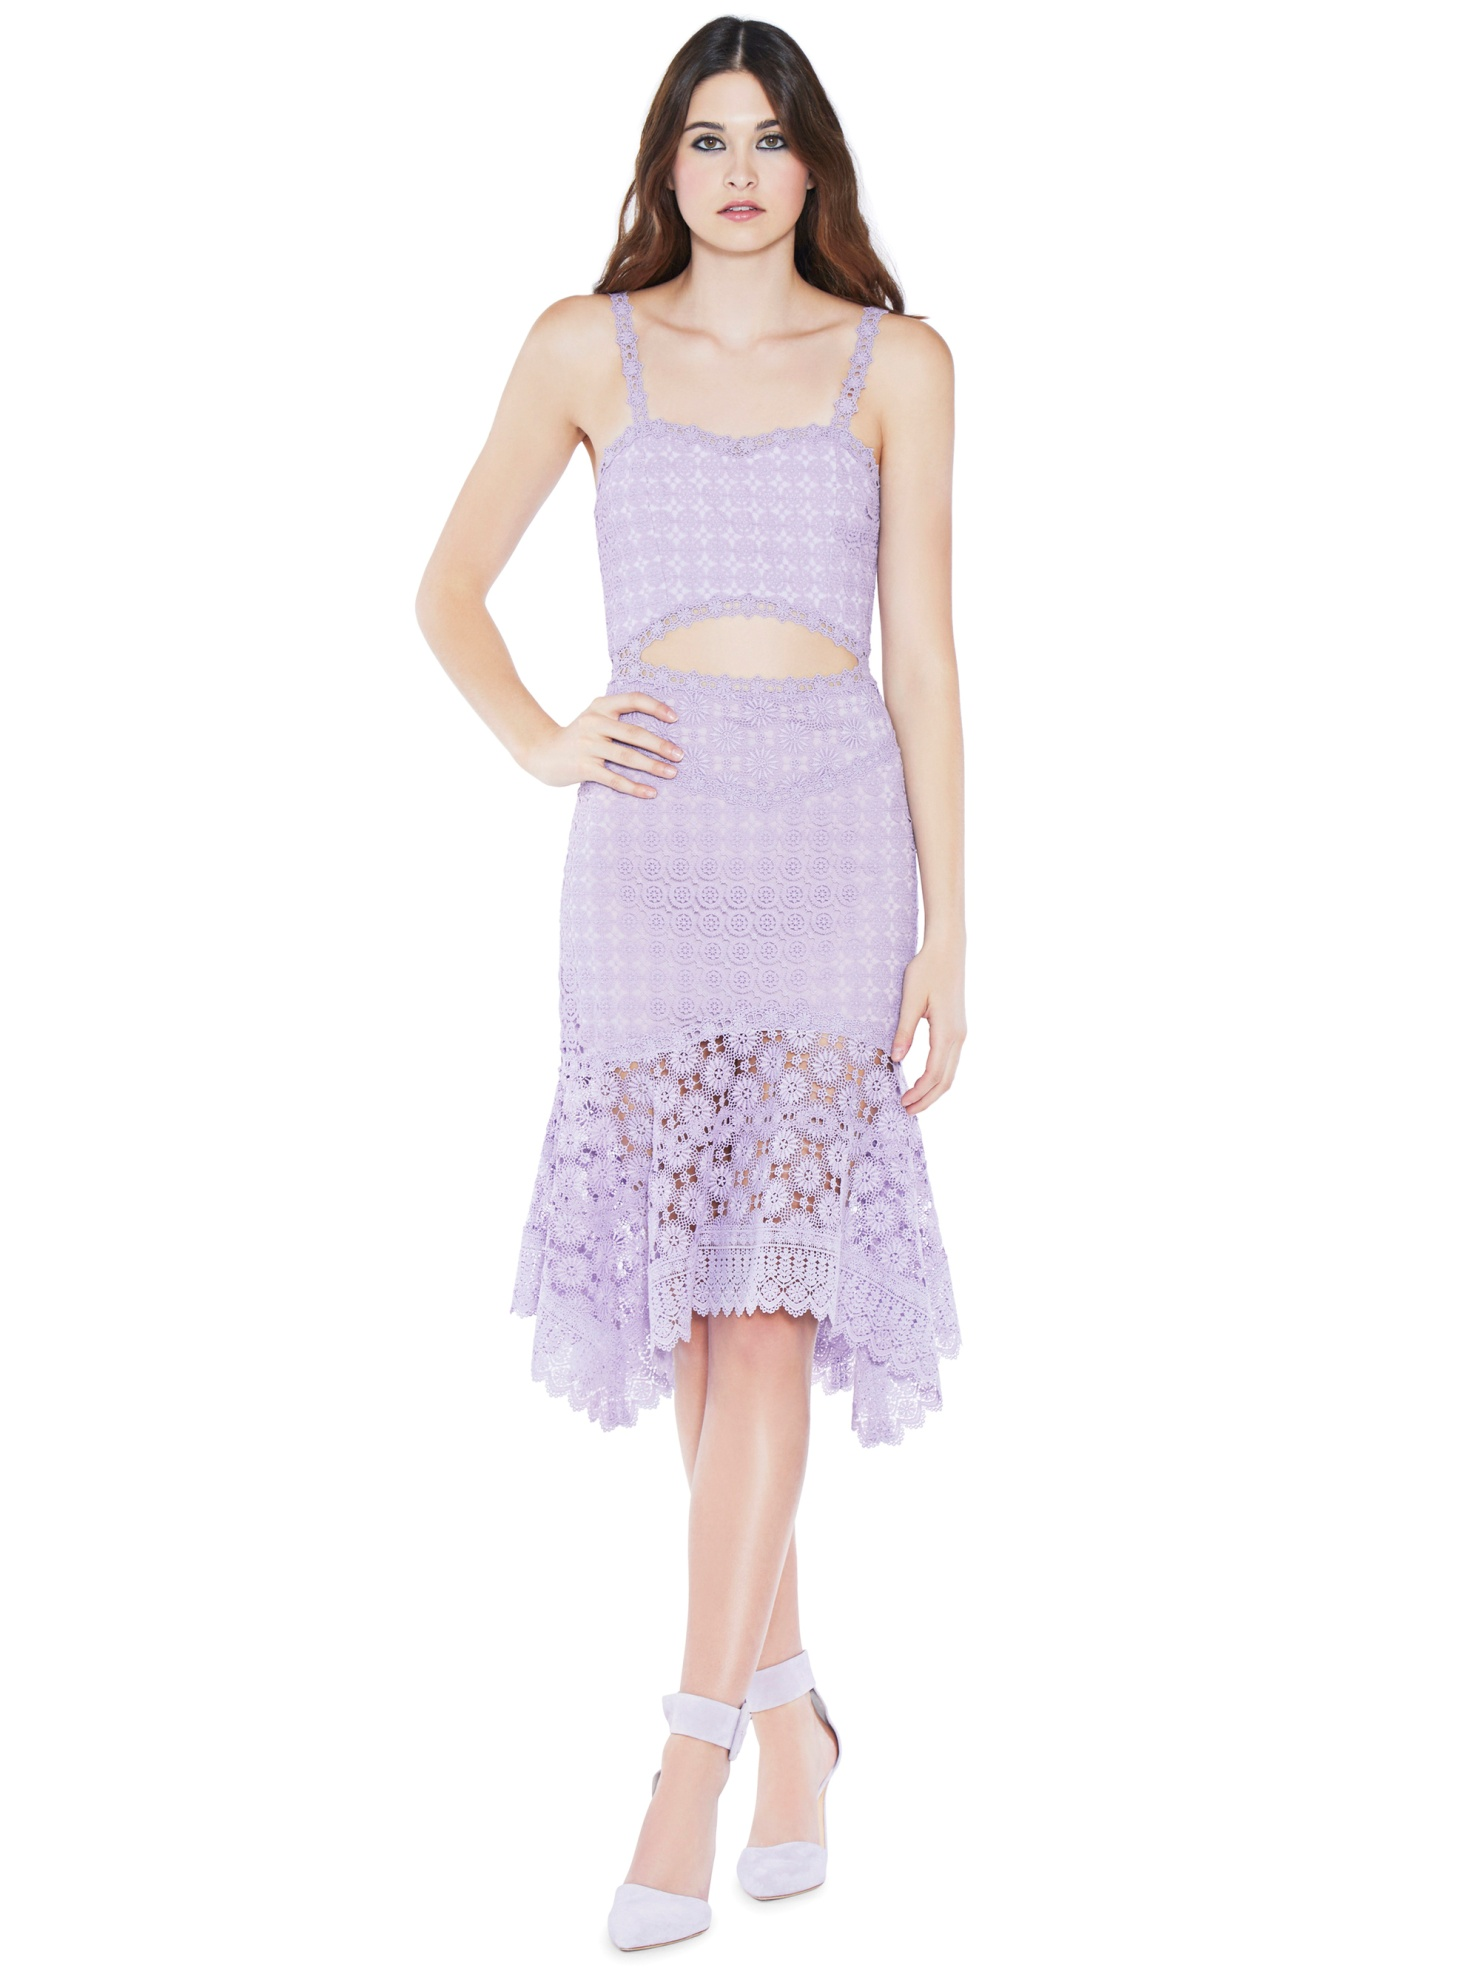 alice_and_olivia_TAMIKACUTOUTHANDKERCHIEFDRESS_LILAC_888819640736_PRODUCT_01--1747763433.jpg